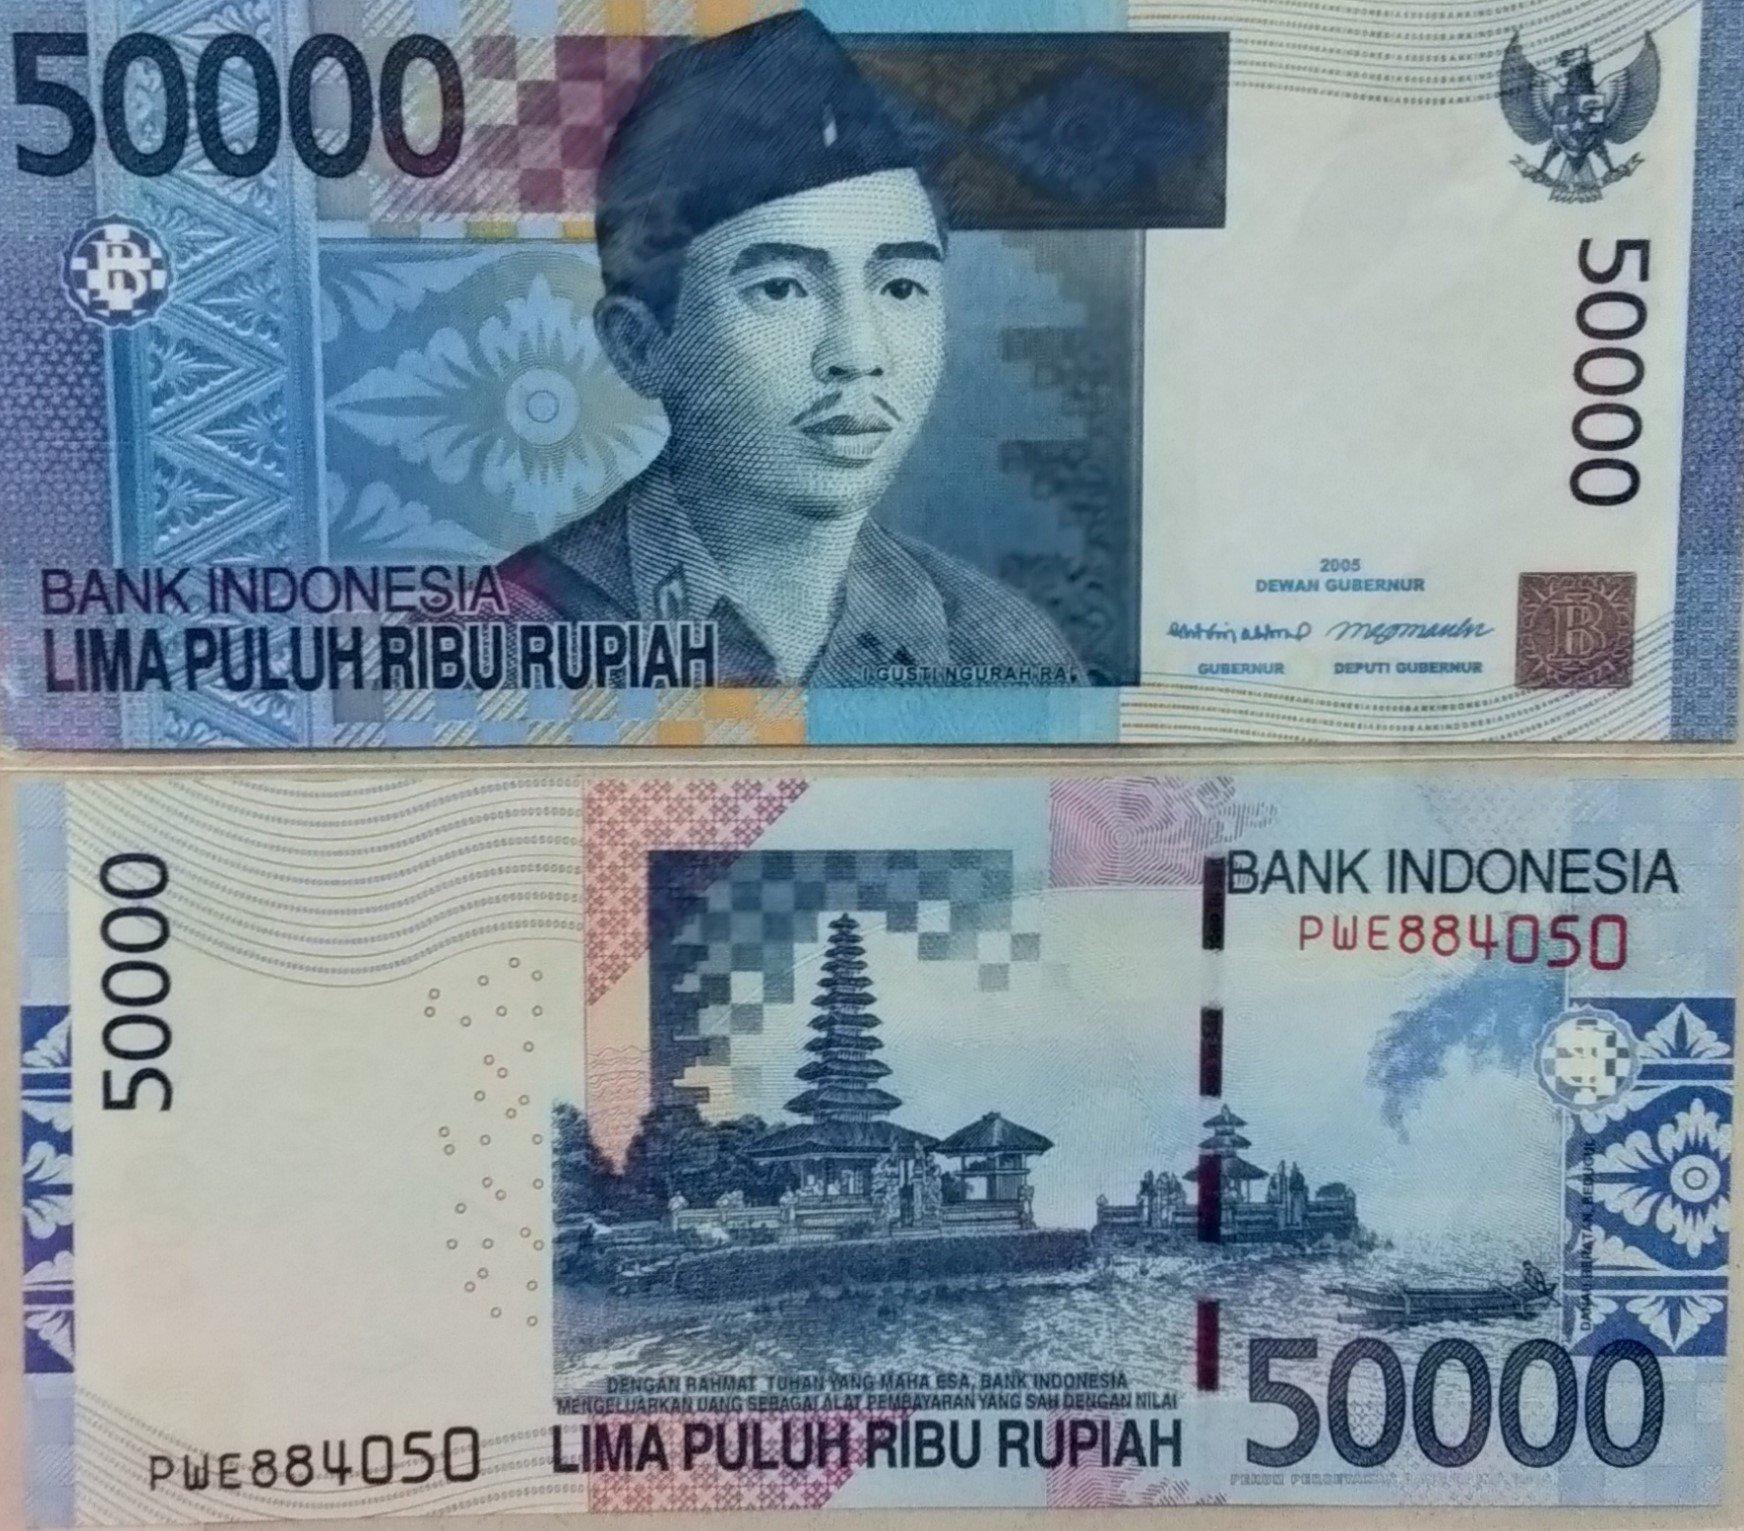 Indonesia 50000 rupiah 2015 banknote for sale